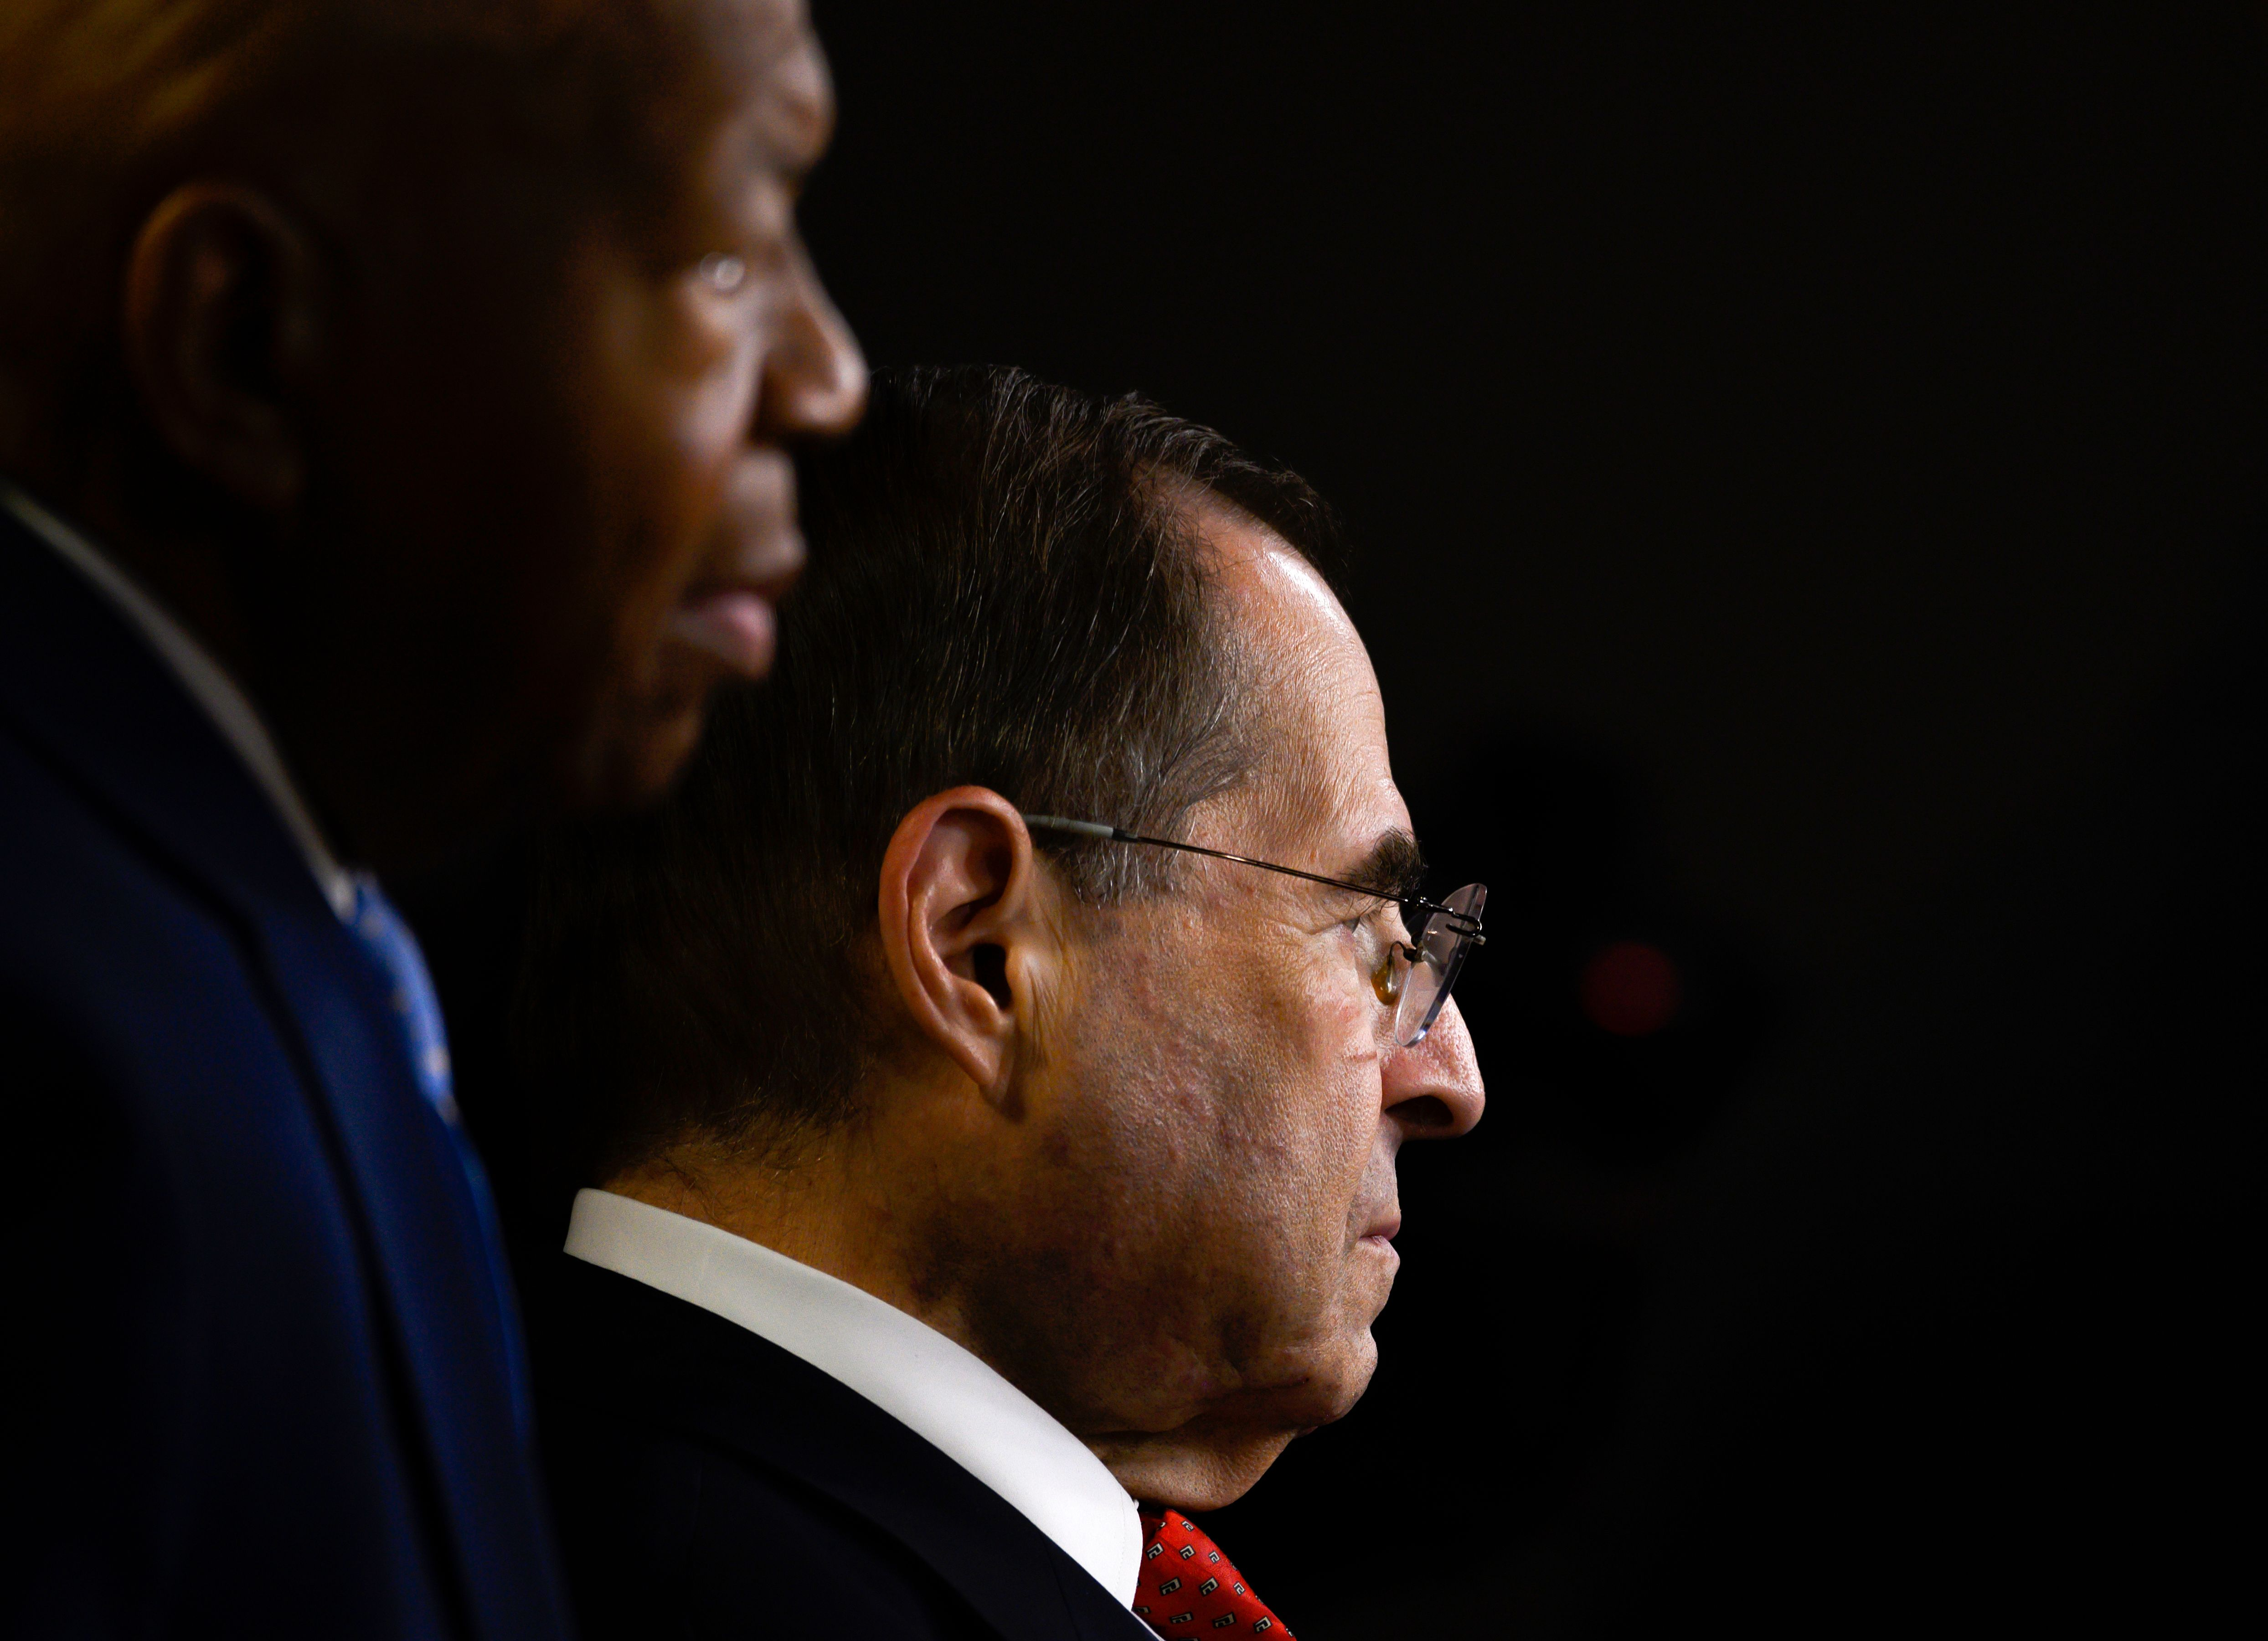 House Judiciary Committee US Representative Jerry Nadler (R) and US Representative Elijah Cummings, Democrat of Maryland and Chairman of the House Oversight and Reform Committee look on during a press conference following the former Special Counsel's testimony before the House Select Committee on Intelligence in Washington, DC, on July 24, 2019. (Photo by ANDREW CABALLERO-REYNOLDS / AFP) (Photo credit should read ANDREW CABALLERO-REYNOLDS/AFP/Getty Images)